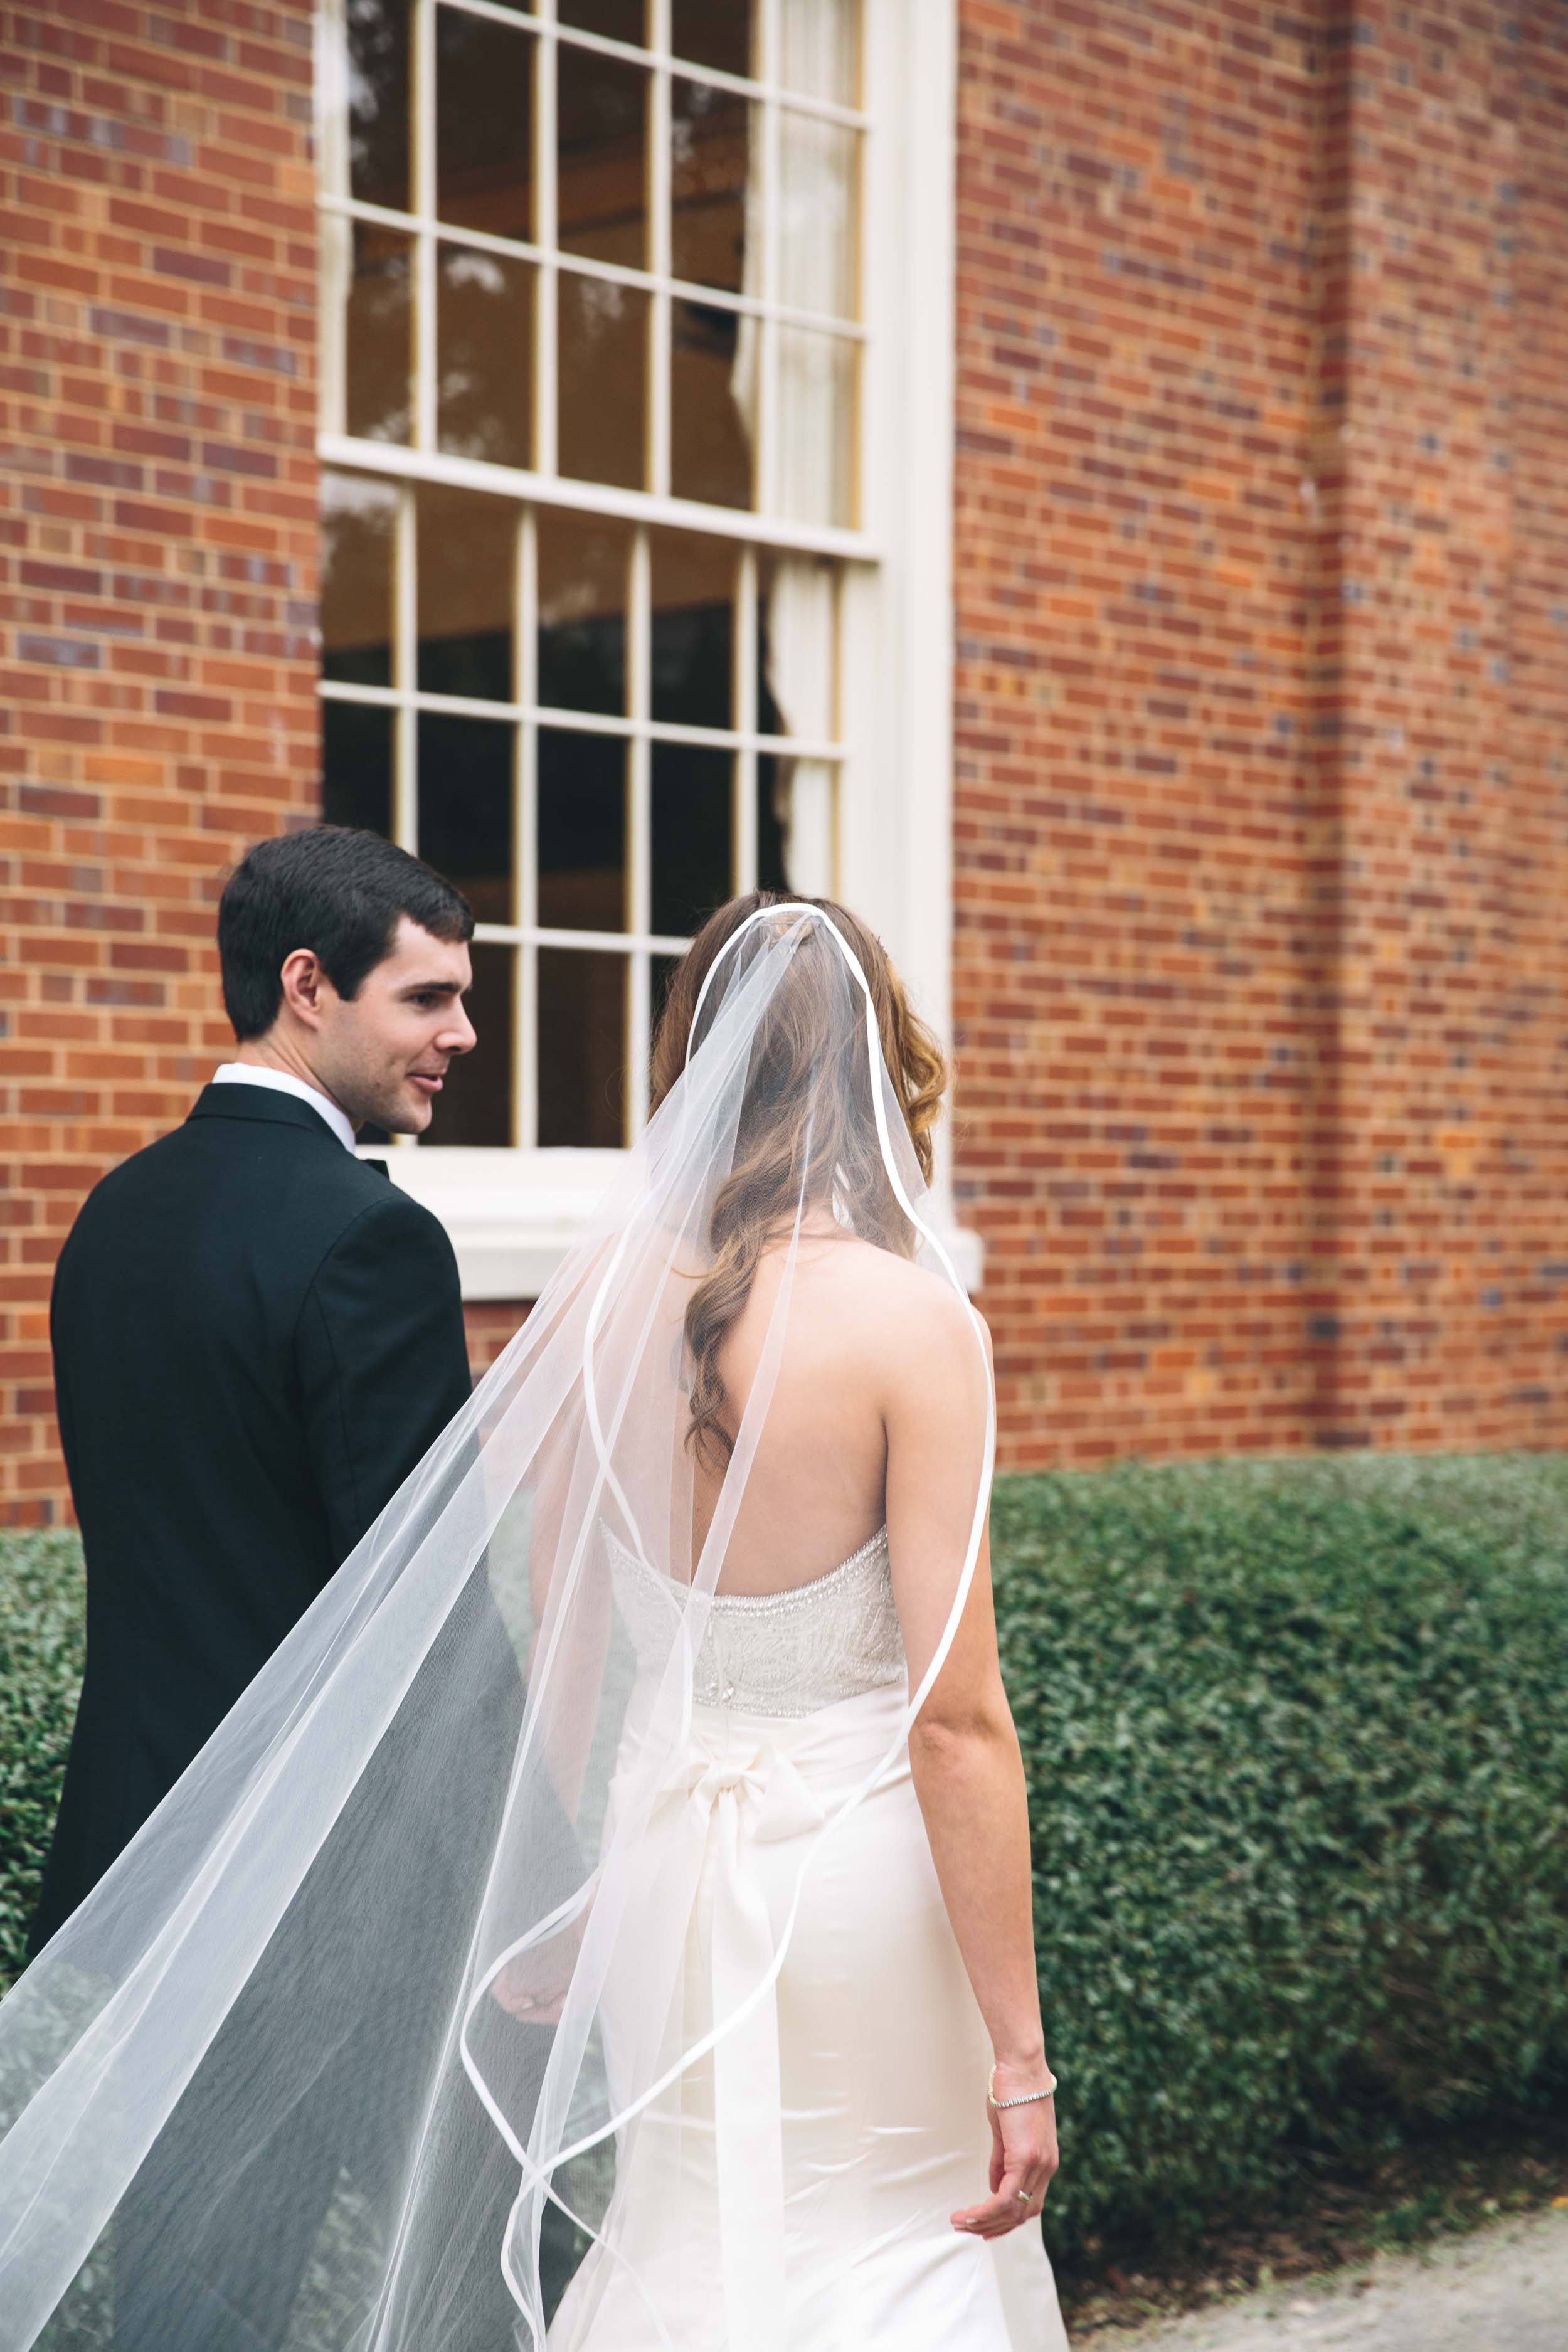 jimmy-rowalt-atlanta-wedding-photography-089.jpg